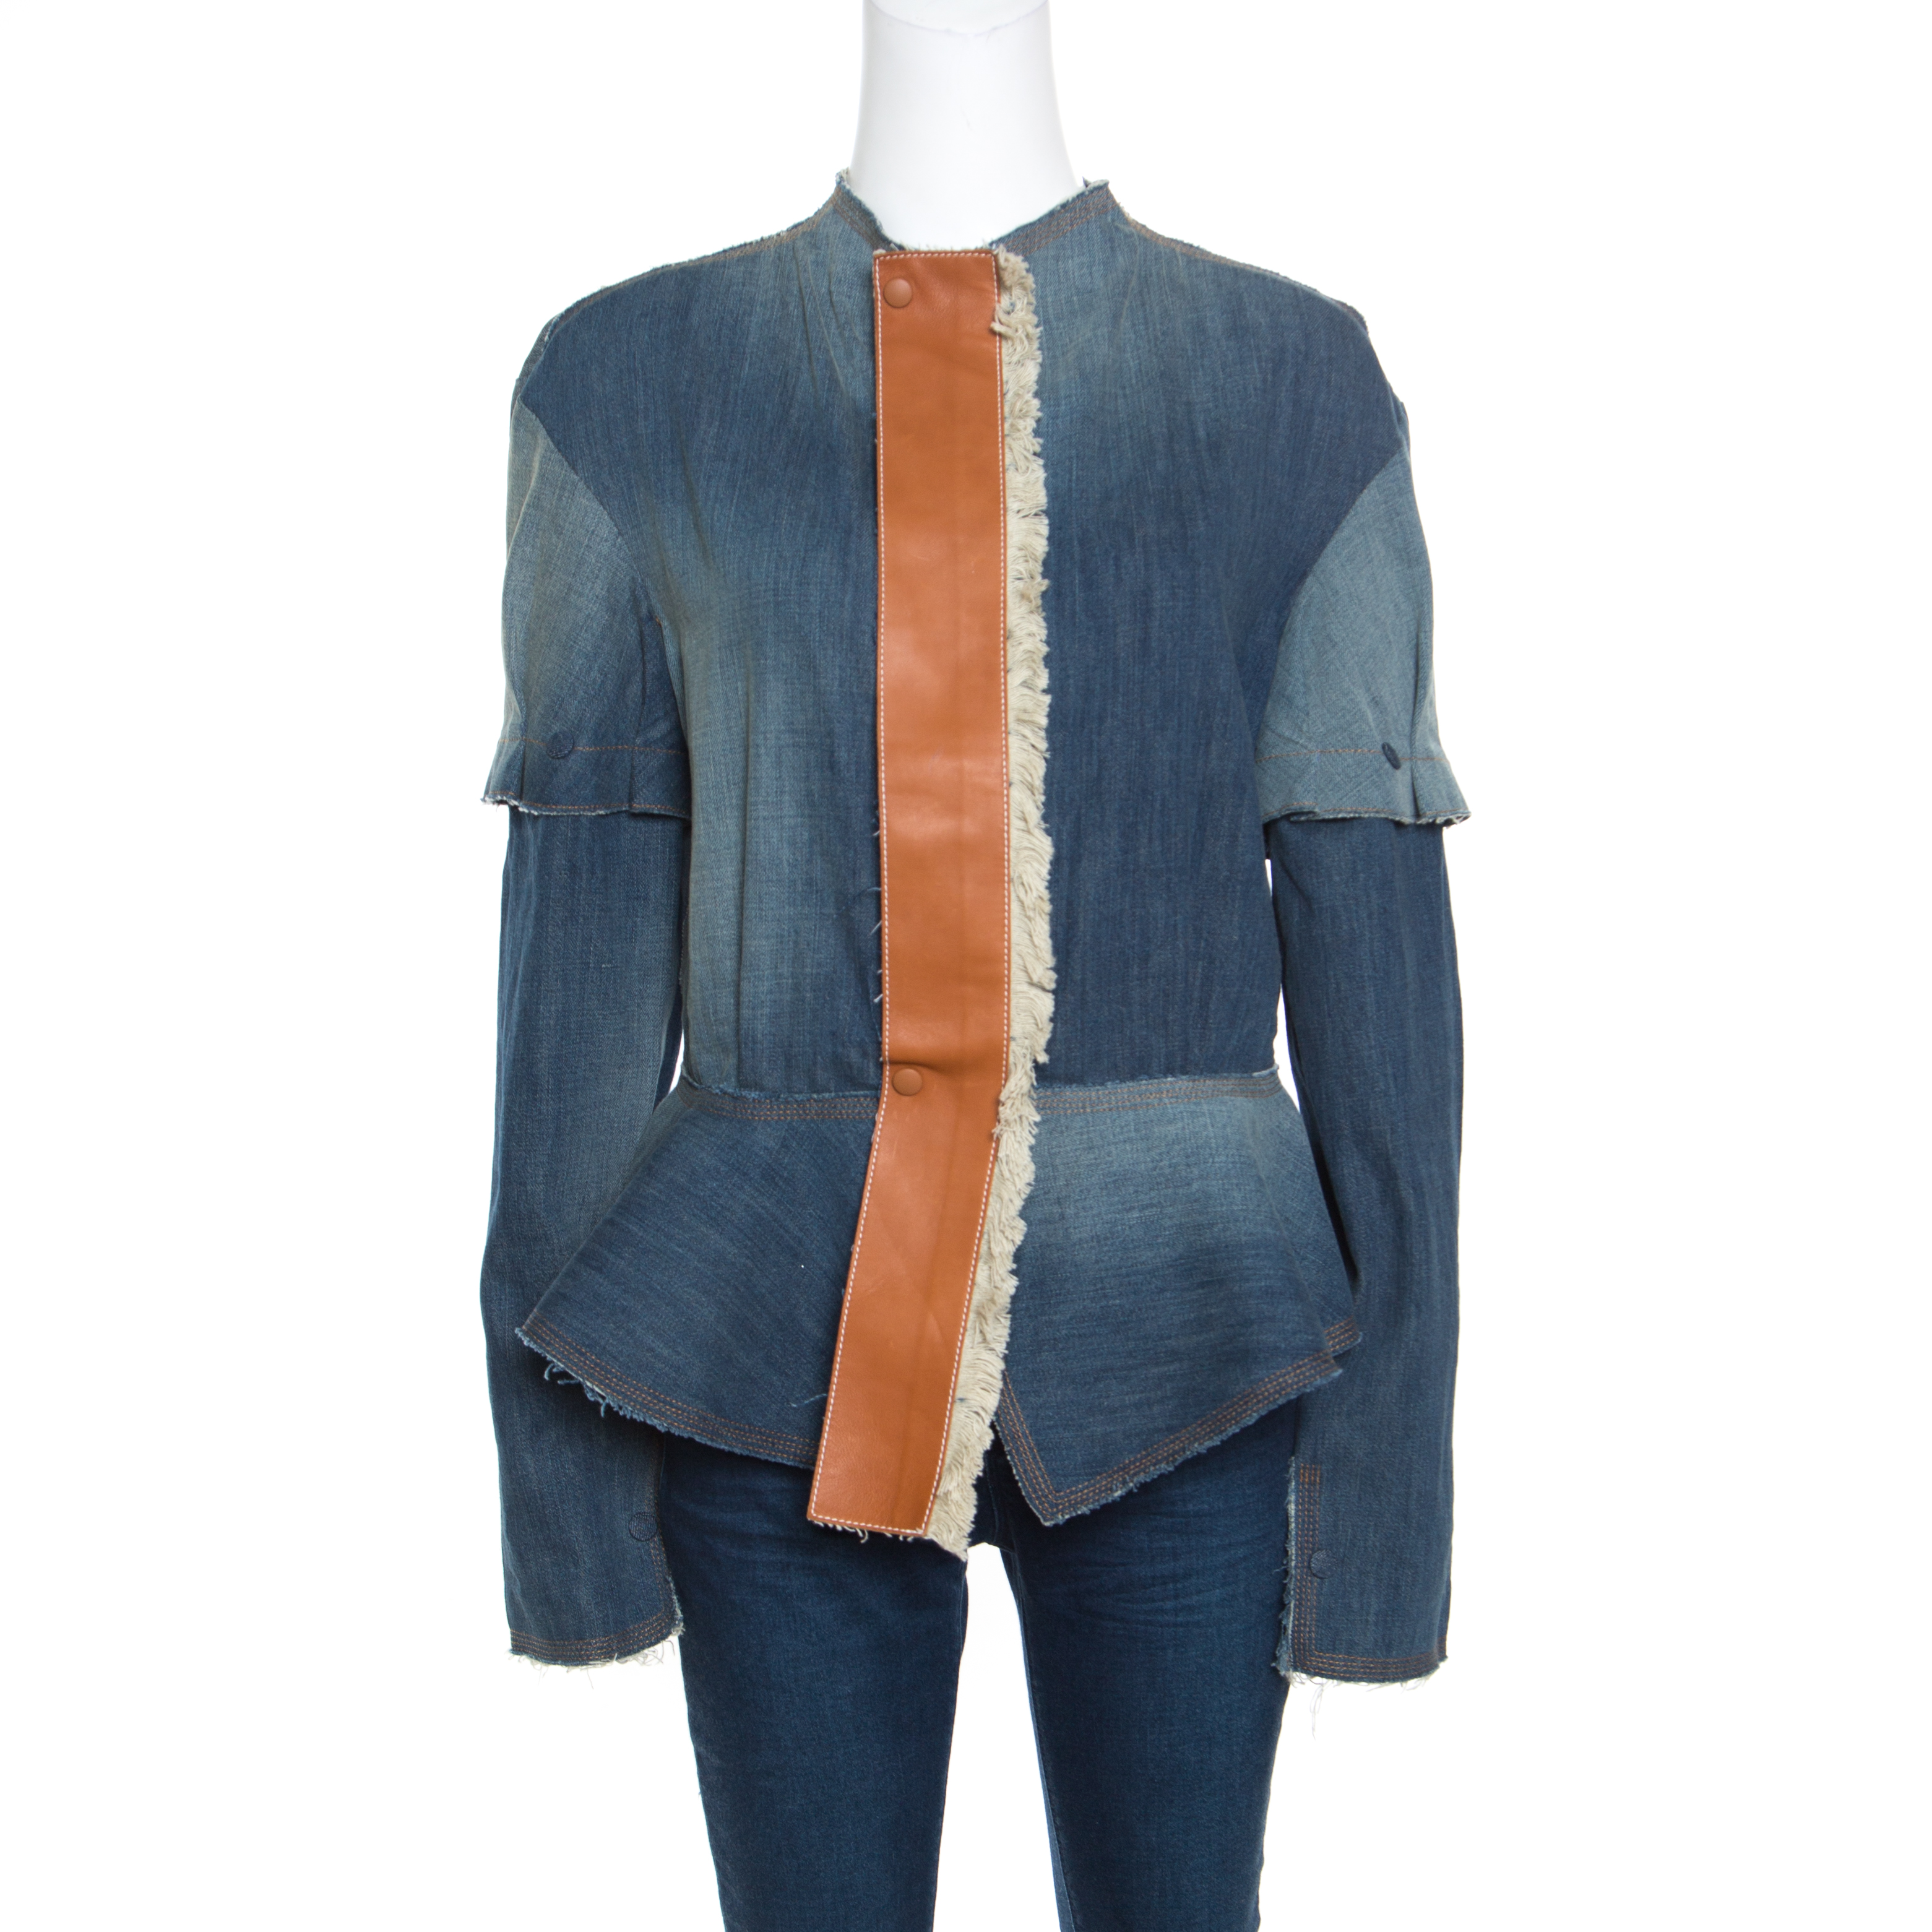 Фото #1: Loewe Indigo Washed Frayed Edge Denim Leather Trim Peplum Jacket M